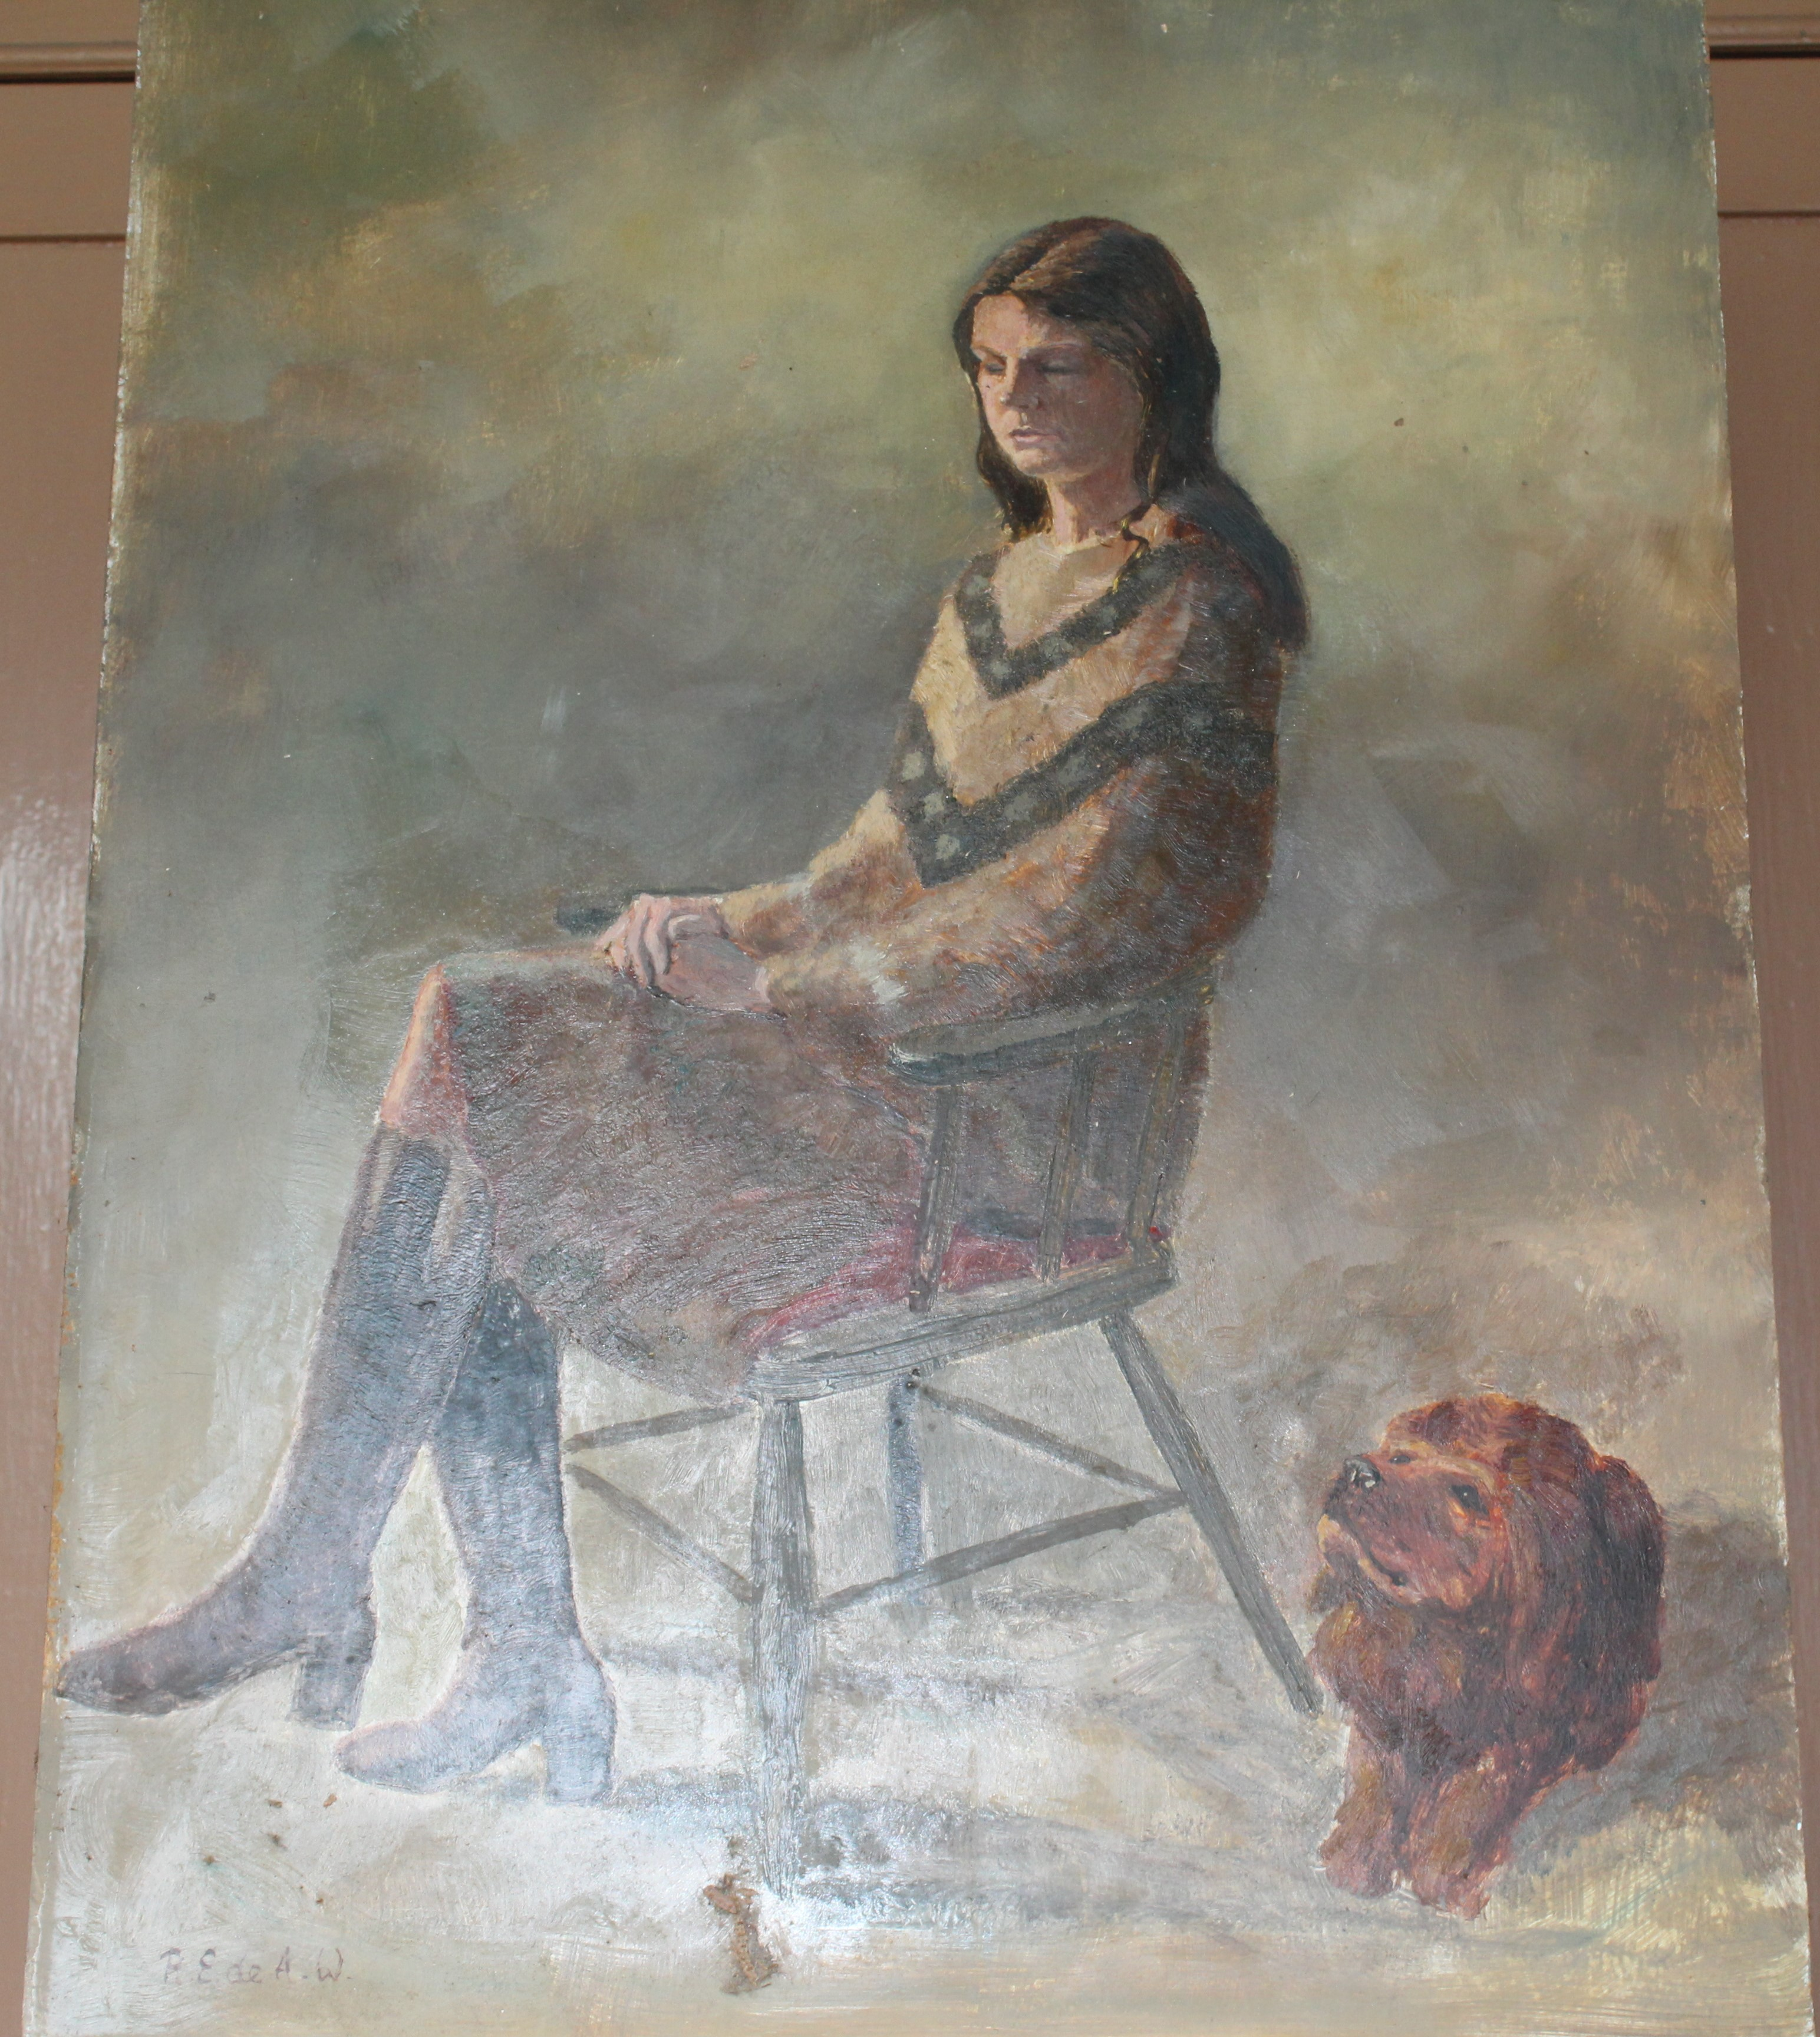 •DAY DREAM, WOMAN SEATED WEARING RED JACKET AND DRESS Signed unframed oil on board, 60 x 44.3cm, - Image 4 of 6